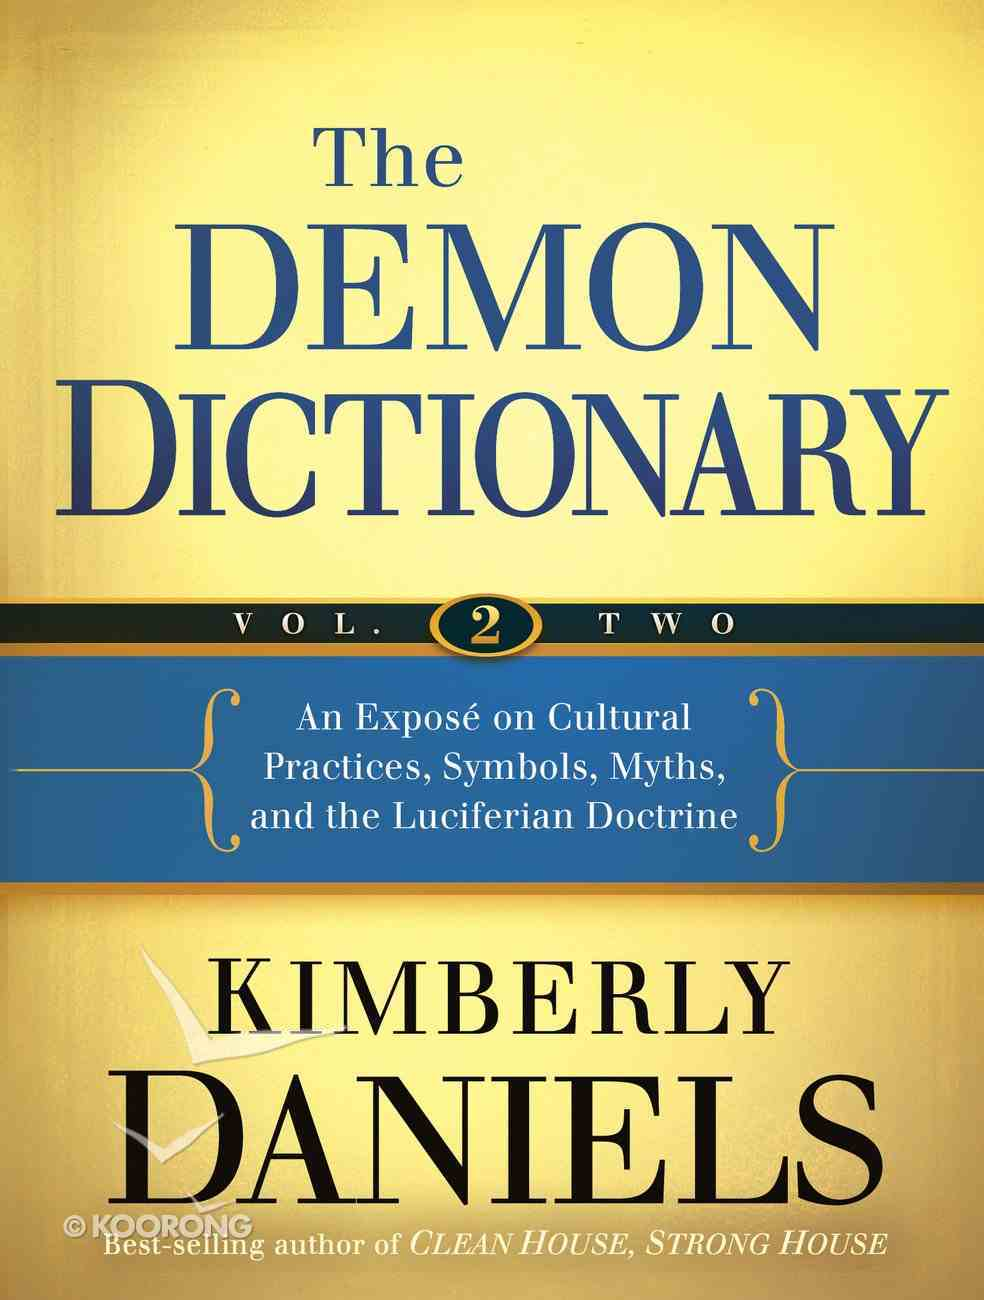 The Demon Dictionary: An Expos on Cultural Practices, Symbols, Myths, and the Luciferian Doctrine (Vol 2) eBook